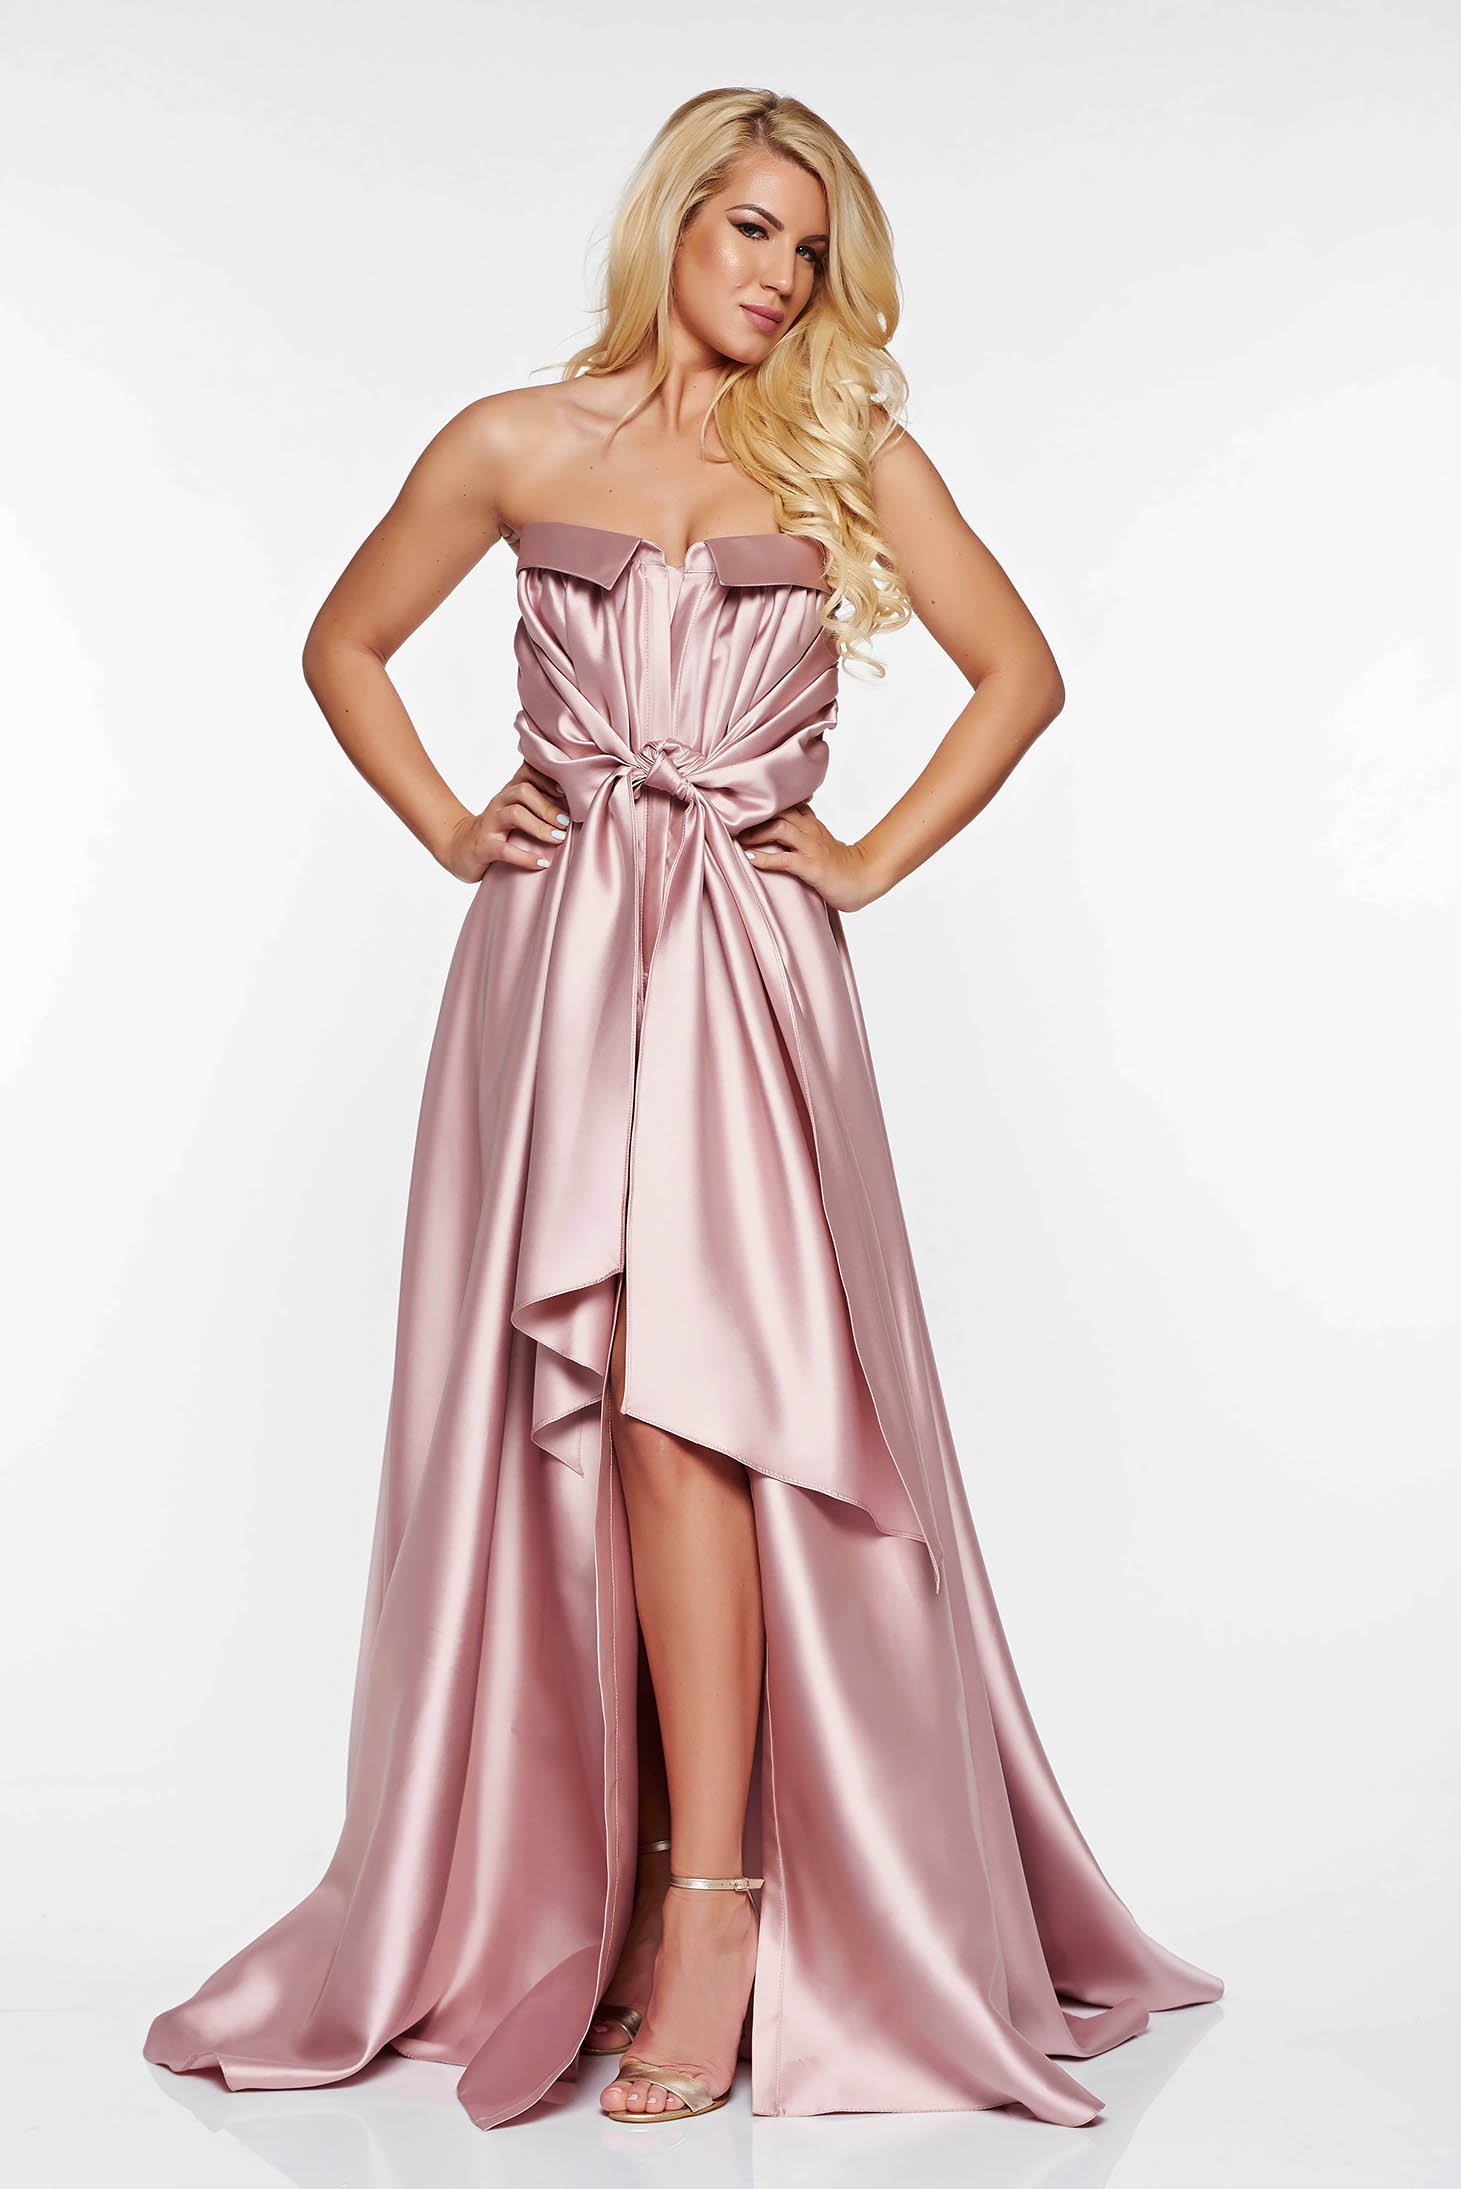 LaDonna rosa dress occasional from satin fabric texture asymmetrical off shoulder